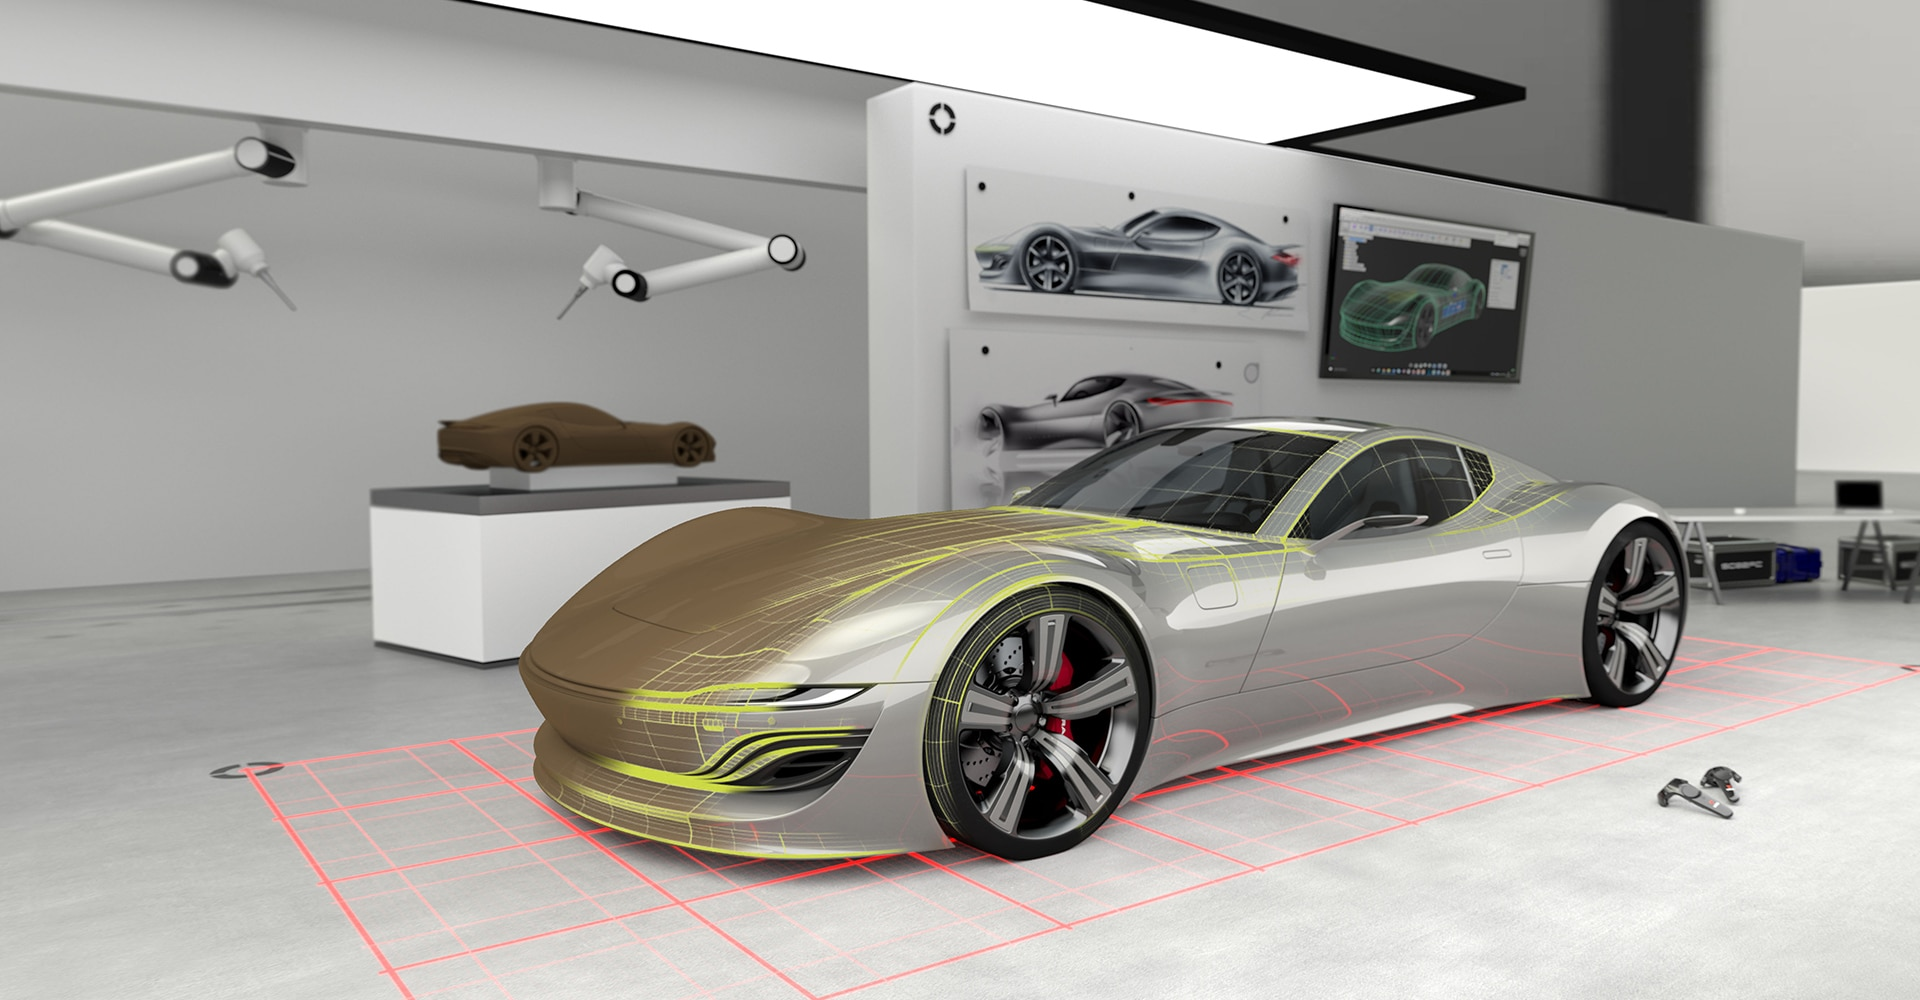 A glimpse into the car design studio of the future